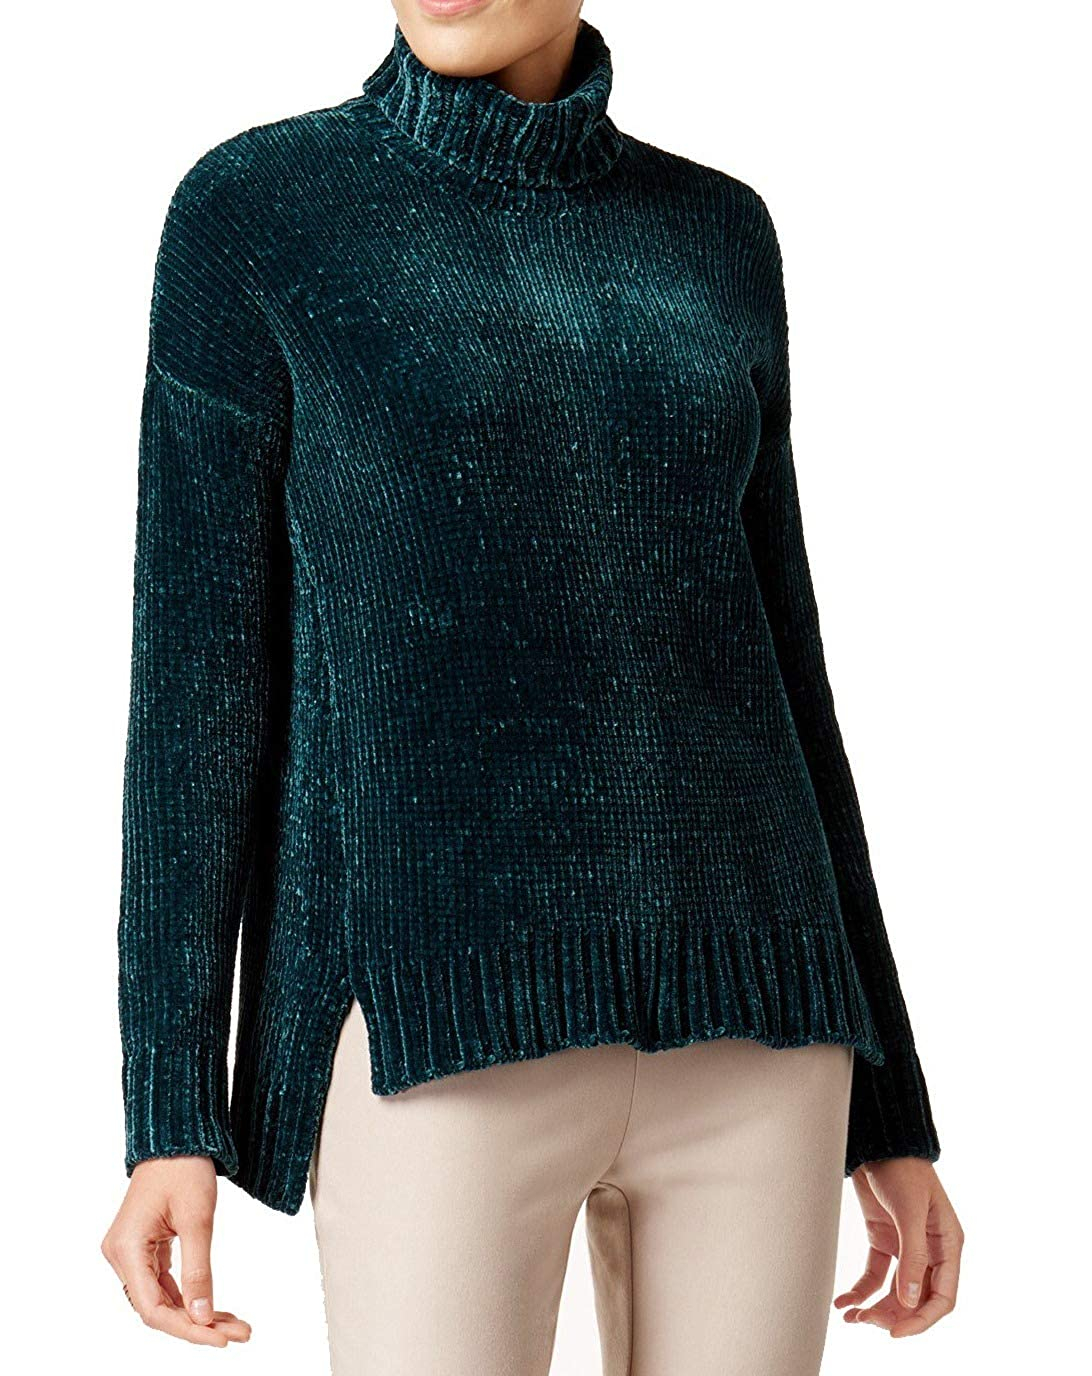 Marled Reunited Clothing Womens Chenille Long Sleeve Turtleneck Sweater